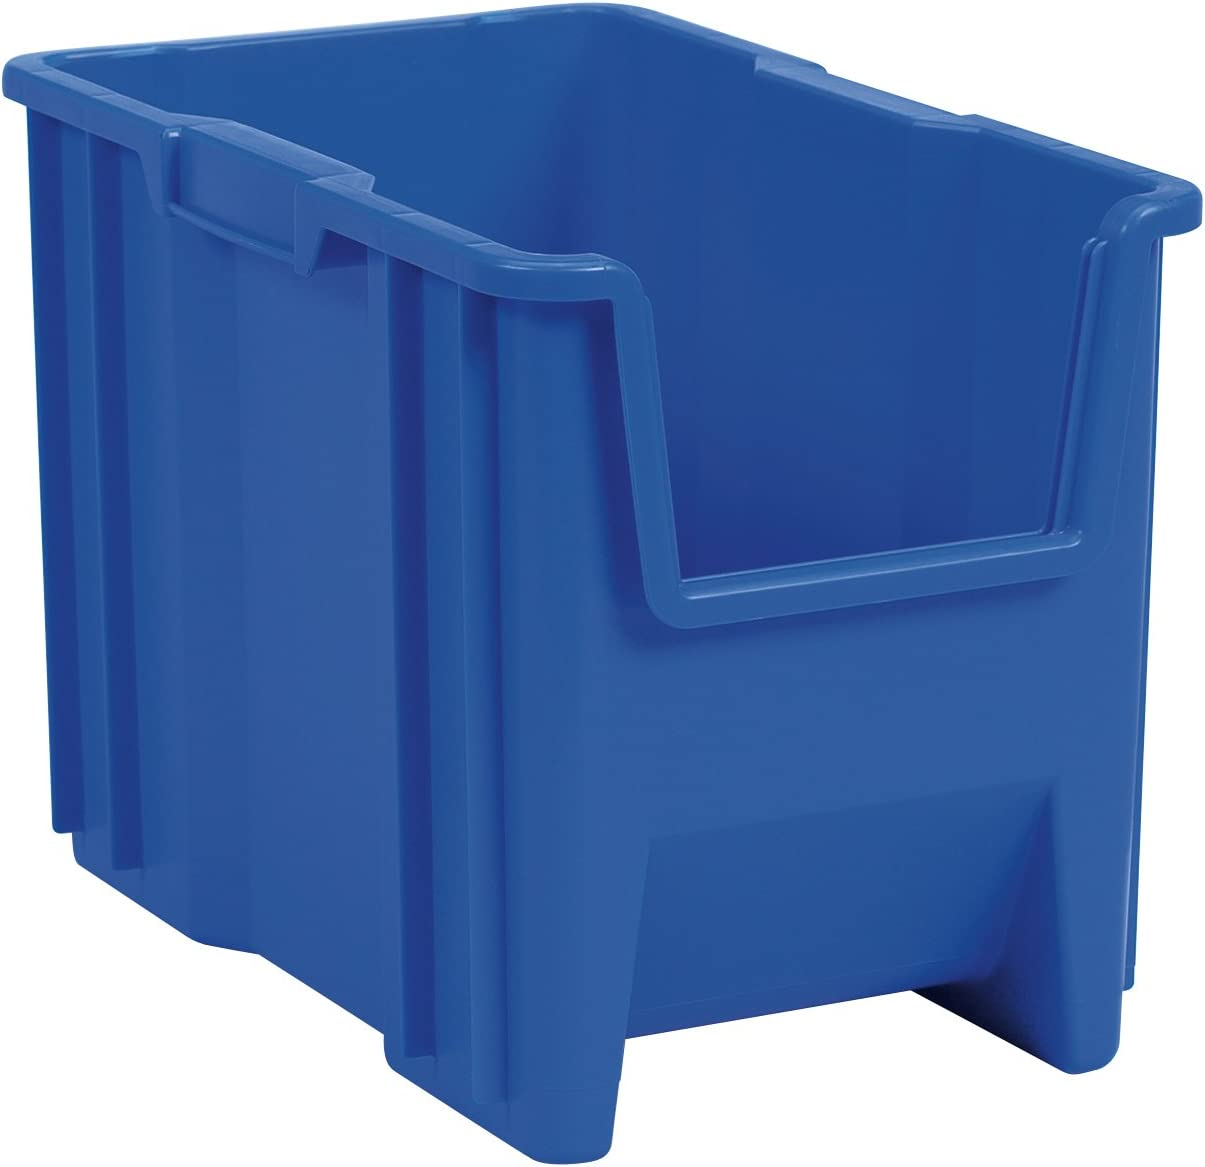 Akro-Mils 13014 Stack-N-Store Heavy Duty Stackable Open Front Plastic Storage Container Bin, (17-1/2-Inch x 11-Inch x 12-1/2-Inch), Blue, (4-Pack)